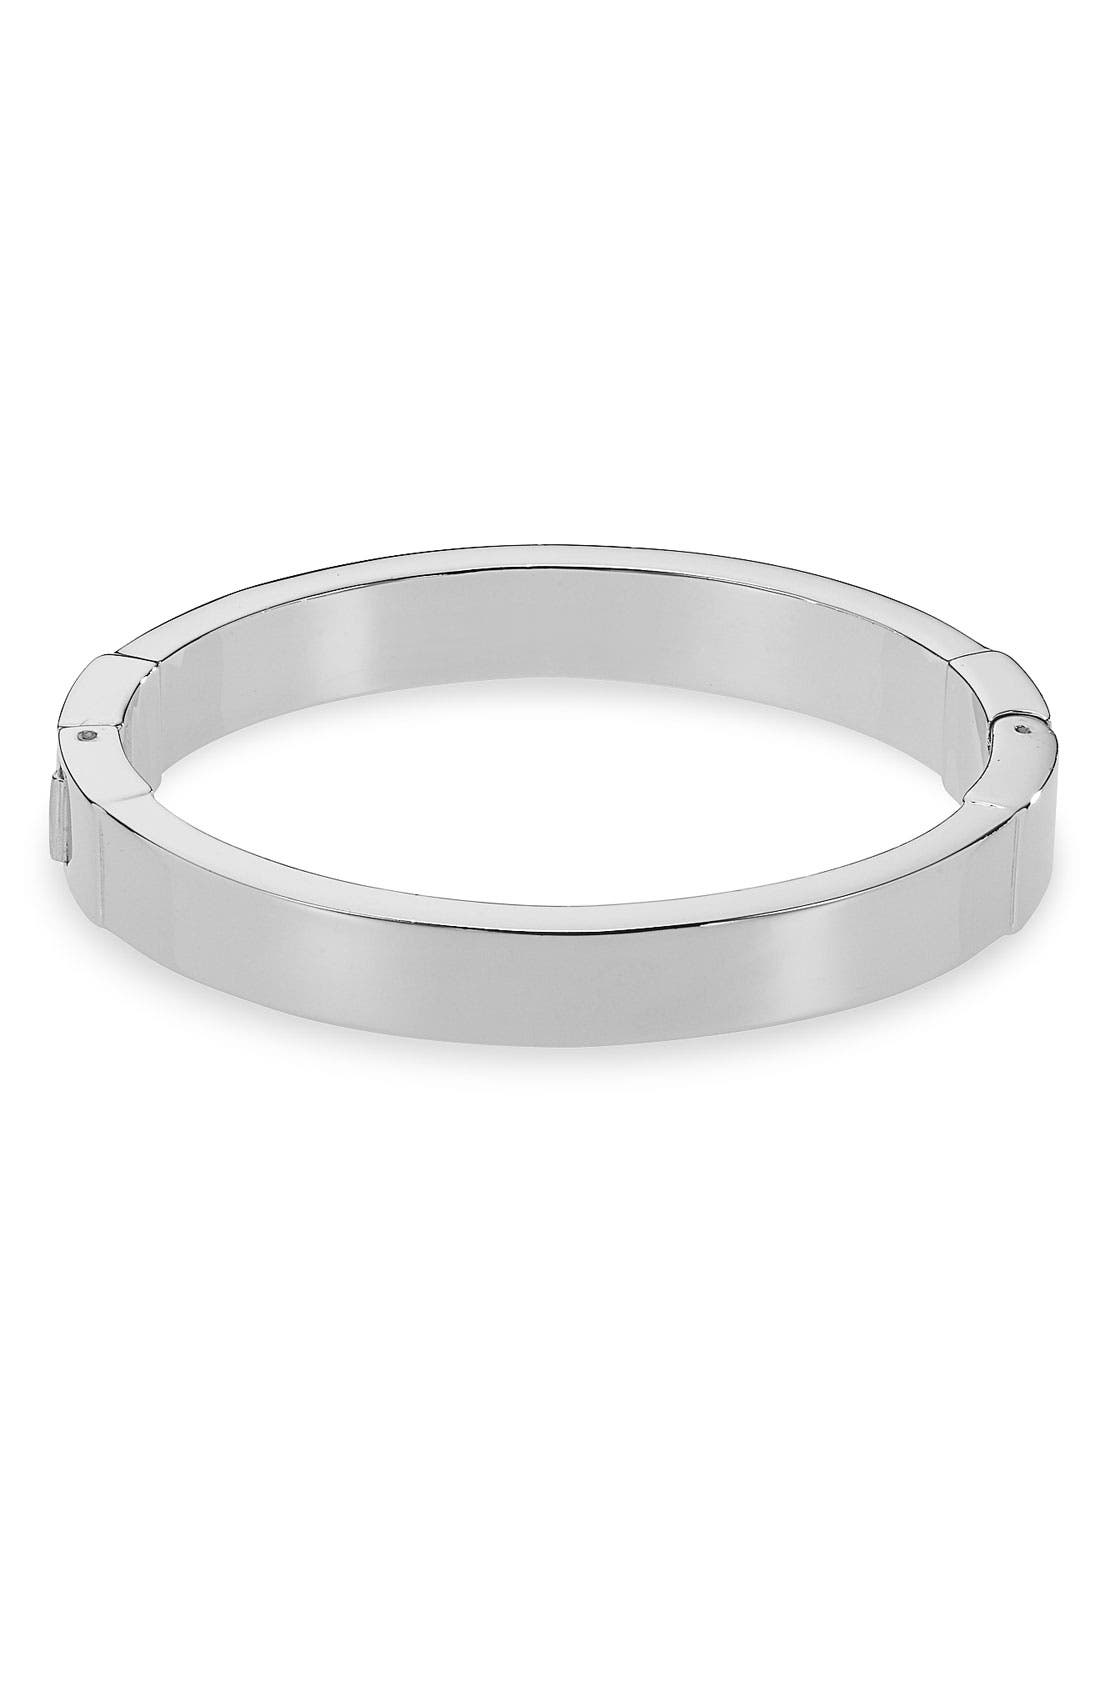 Michael Kors Hinged Bangle,                         Main,                         color, 040